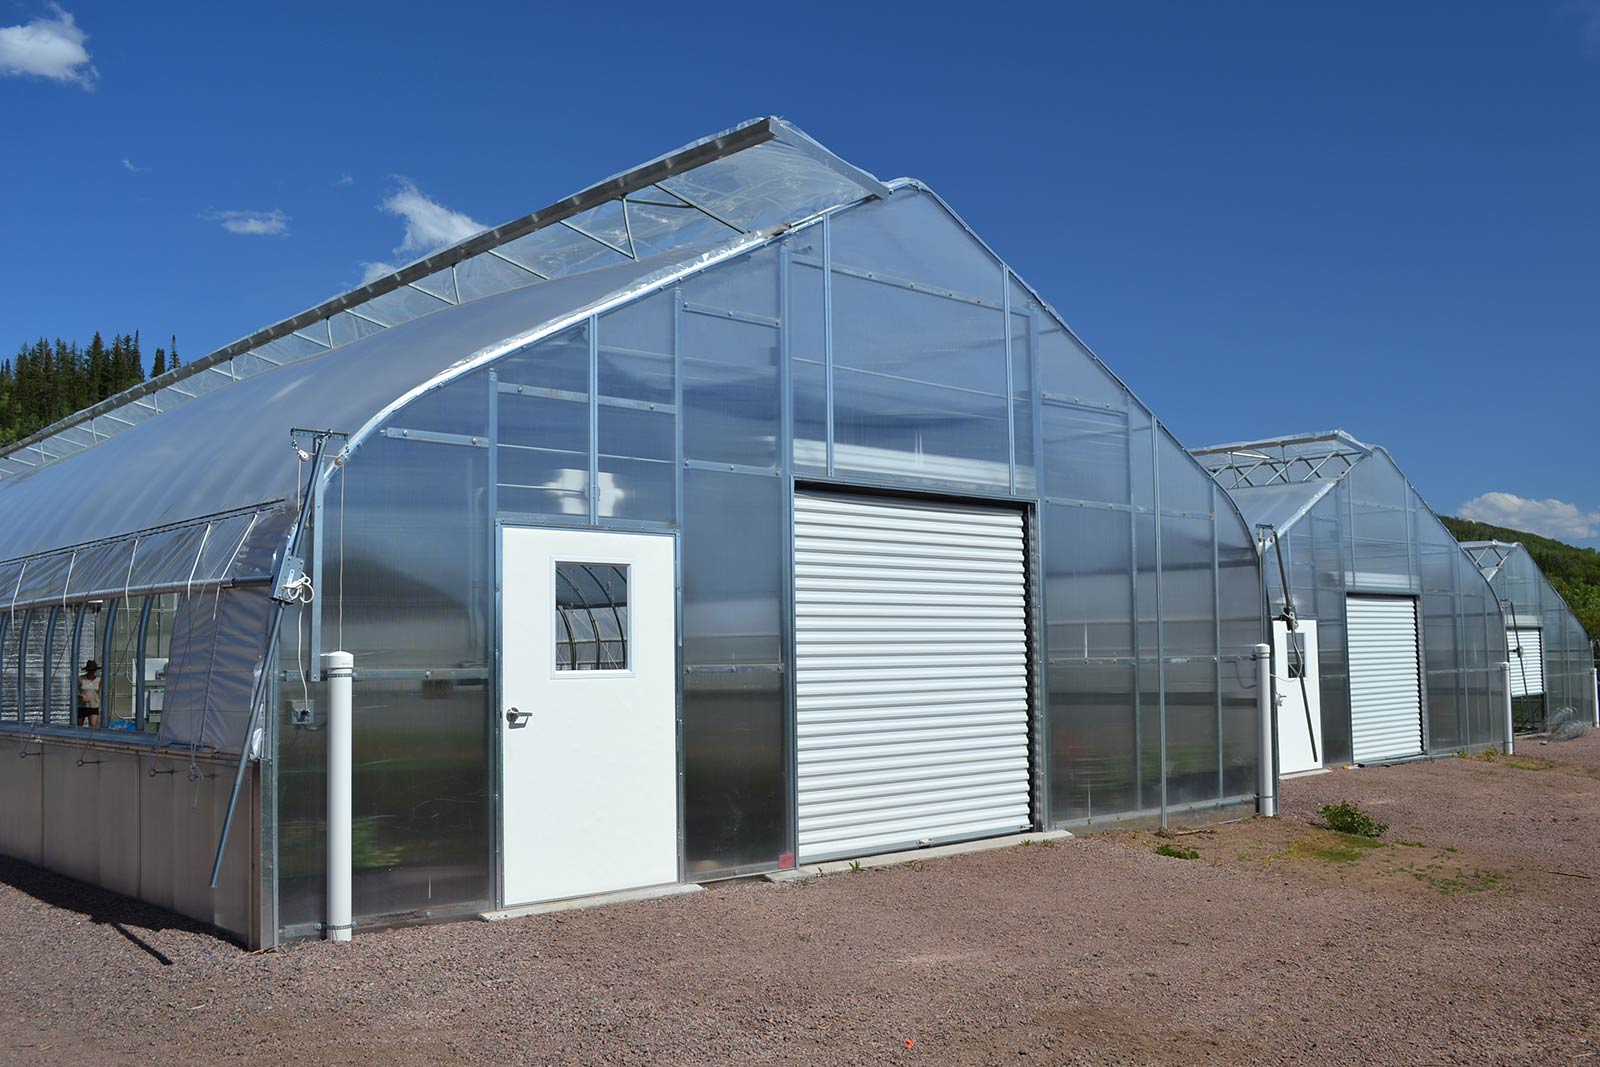 High Tunnel Greenhouse | Rimol Greenhouses on quonset greenhouse plans, glass greenhouse plans, storage greenhouse plans, a-frame greenhouse plans, basic greenhouse plans, garden arch plans, underground greenhouse plans, home greenhouse plans, pit greenhouse plans, gothic style greenhouse plans, inexpensive two-story house plans, attached greenhouse plans, best greenhouse plans, earth sheltered greenhouse plans, unique greenhouse plans, barn greenhouse plans, vintage greenhouse plans, cheap greenhouse plans, diy greenhouse plans, japanese greenhouse plans,